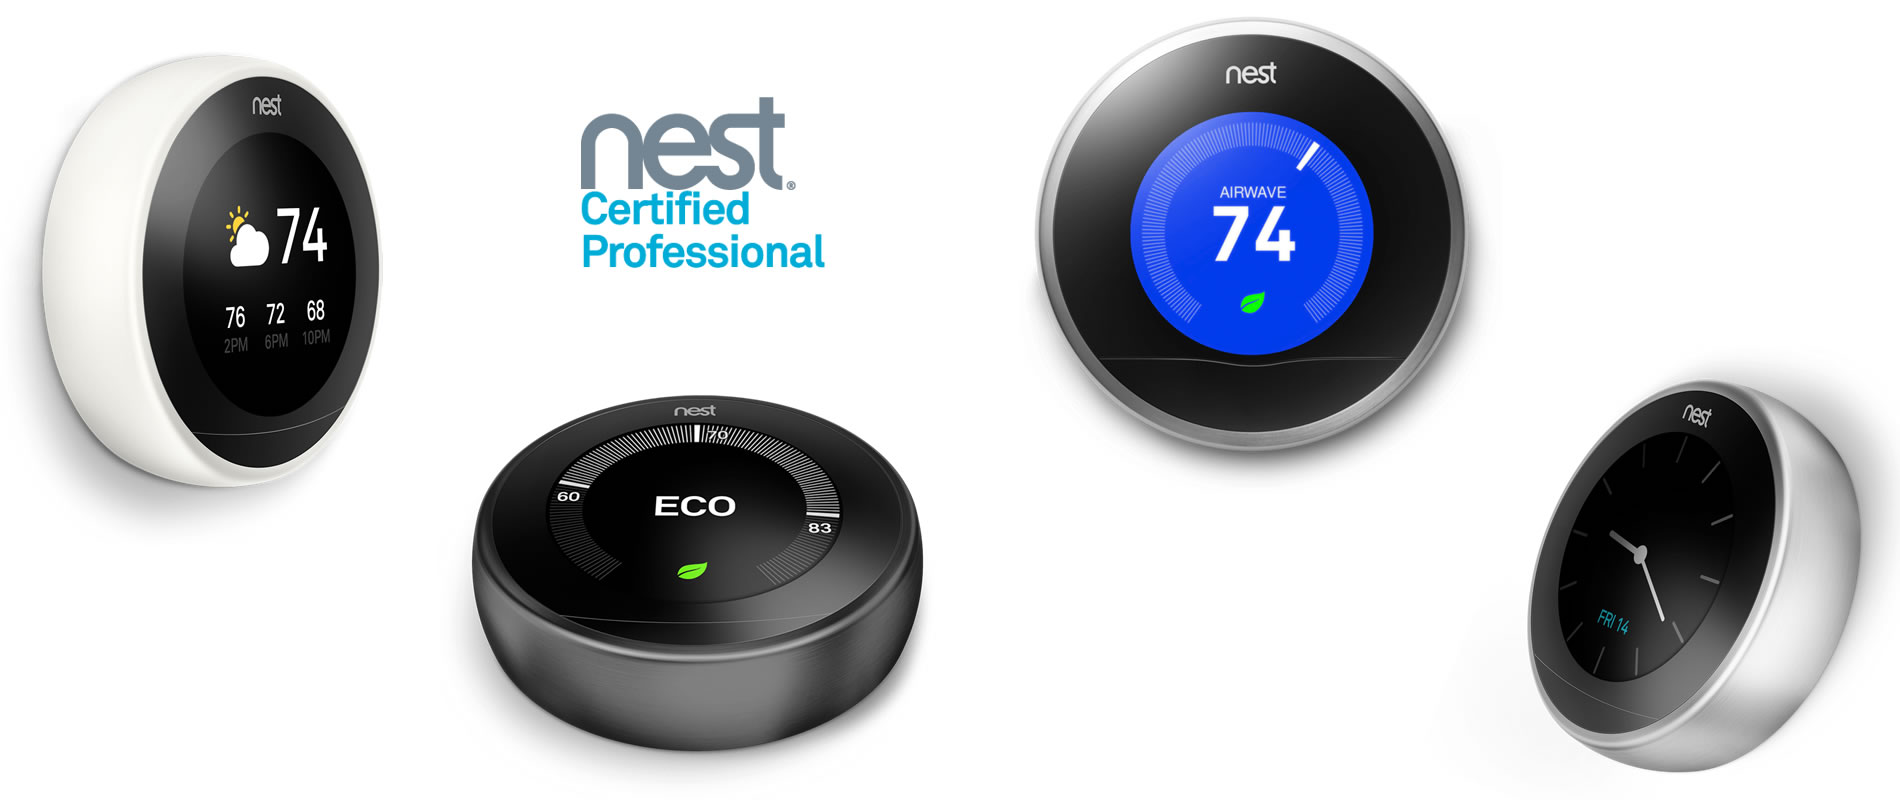 Minimalist design Nest home devices